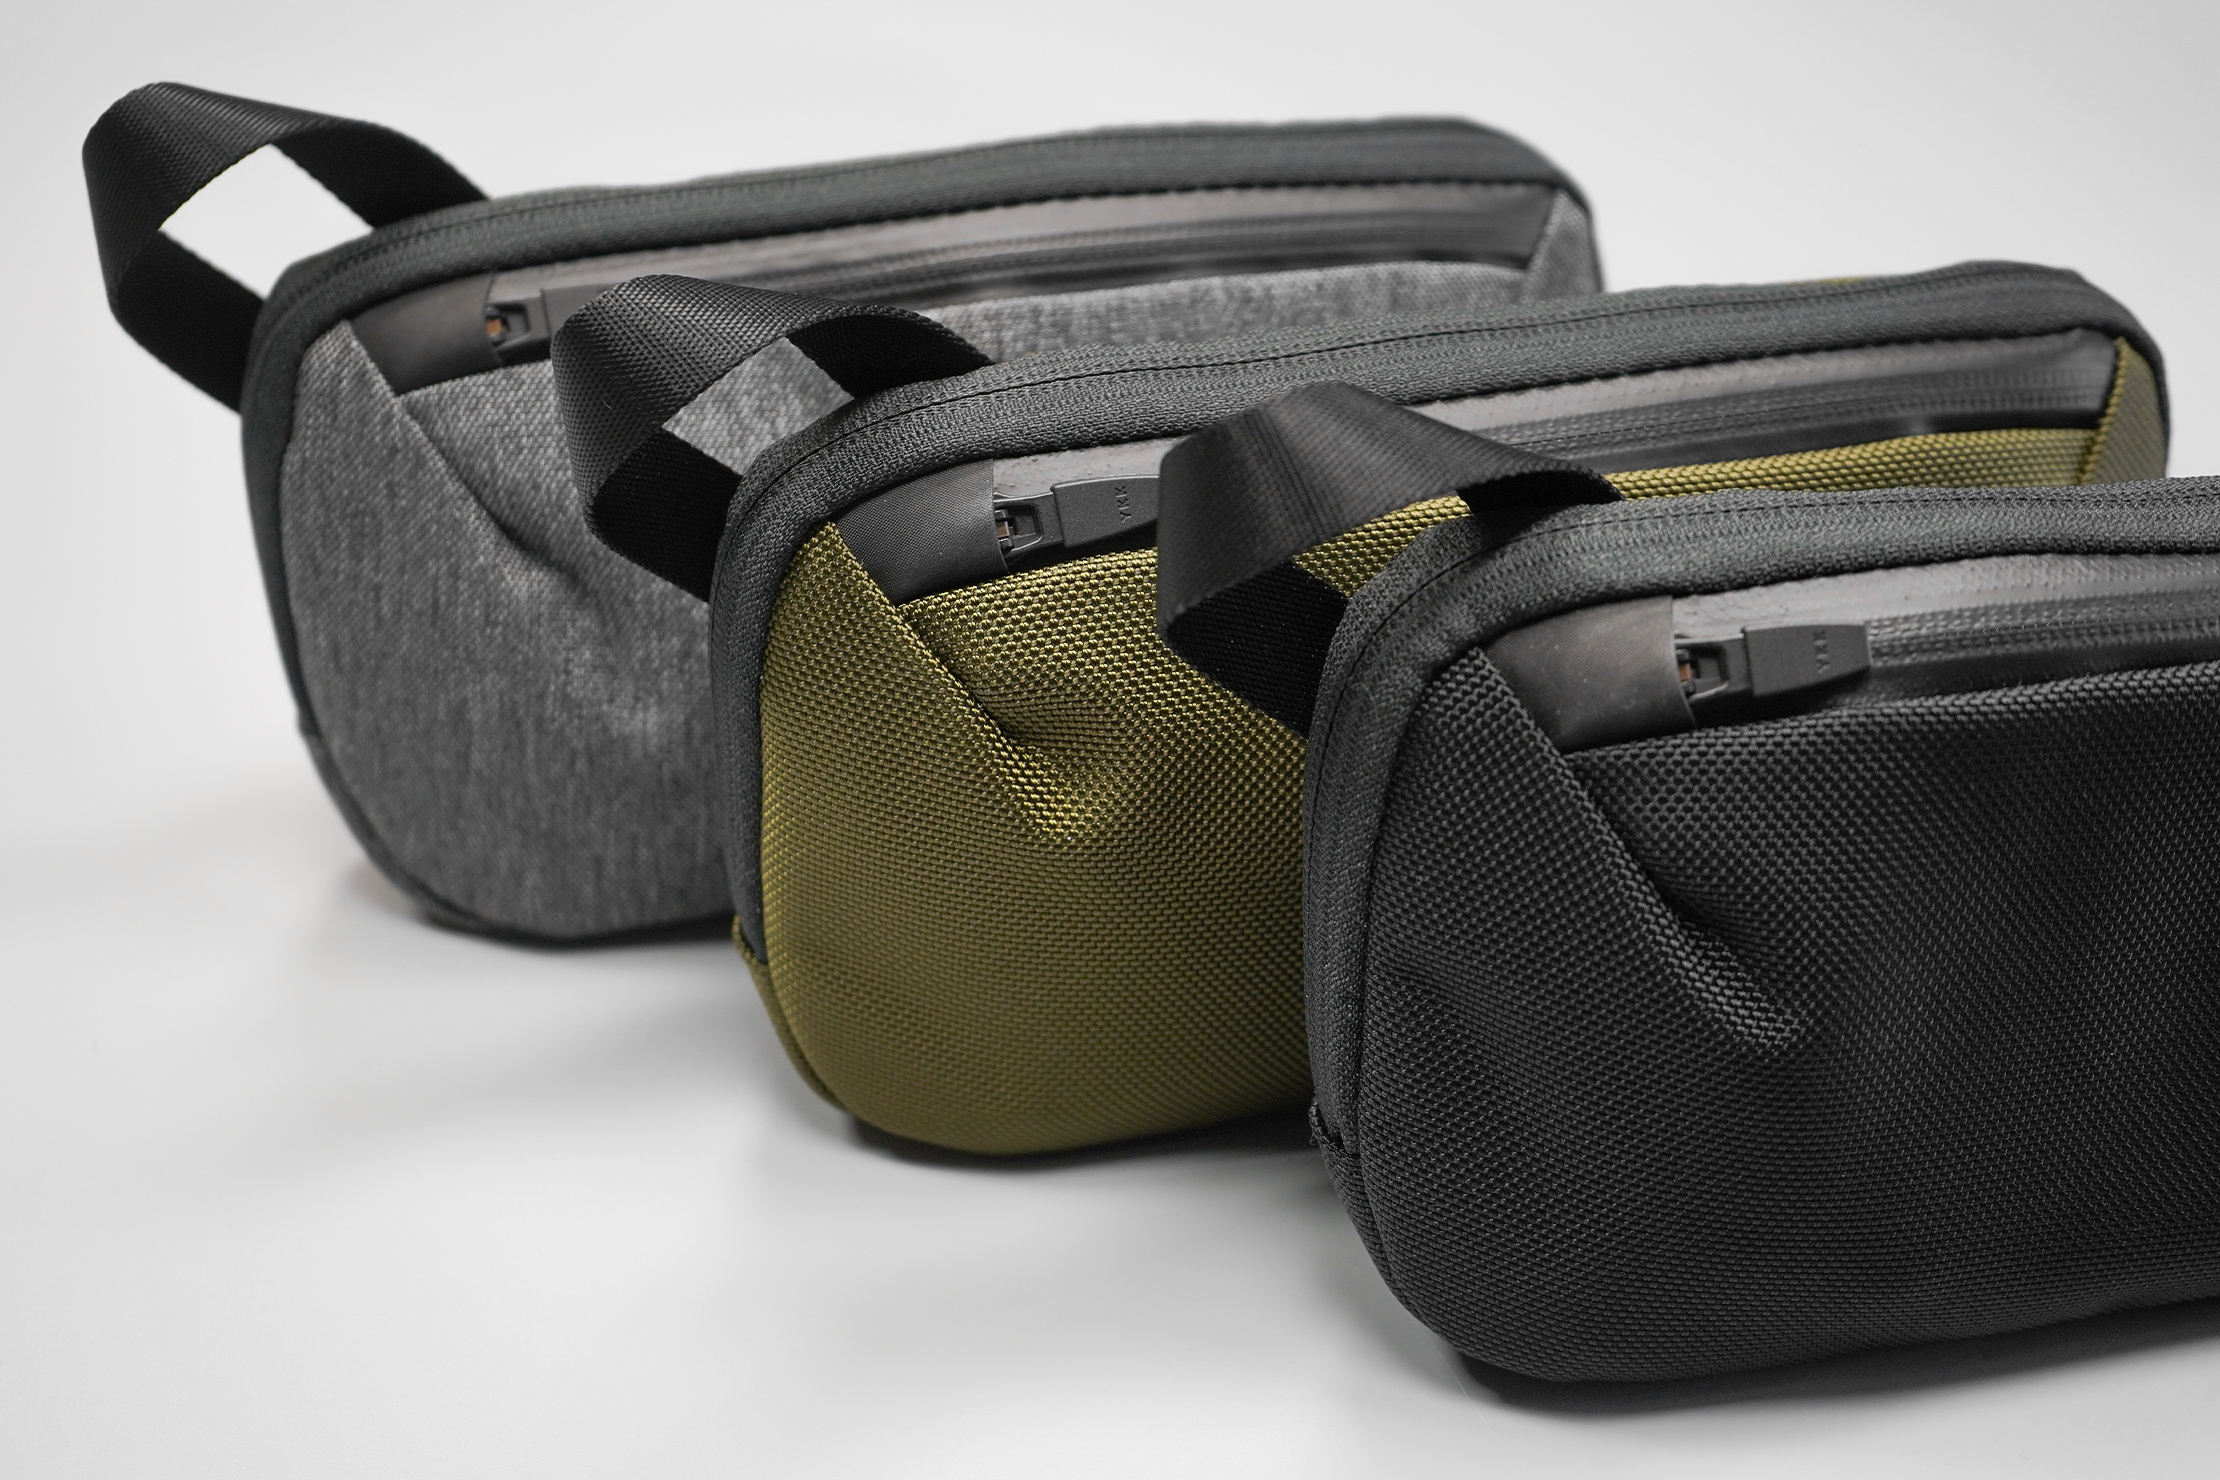 Aer Slim Pouch | From left to right comes Heathered Grey, Olive, and Black